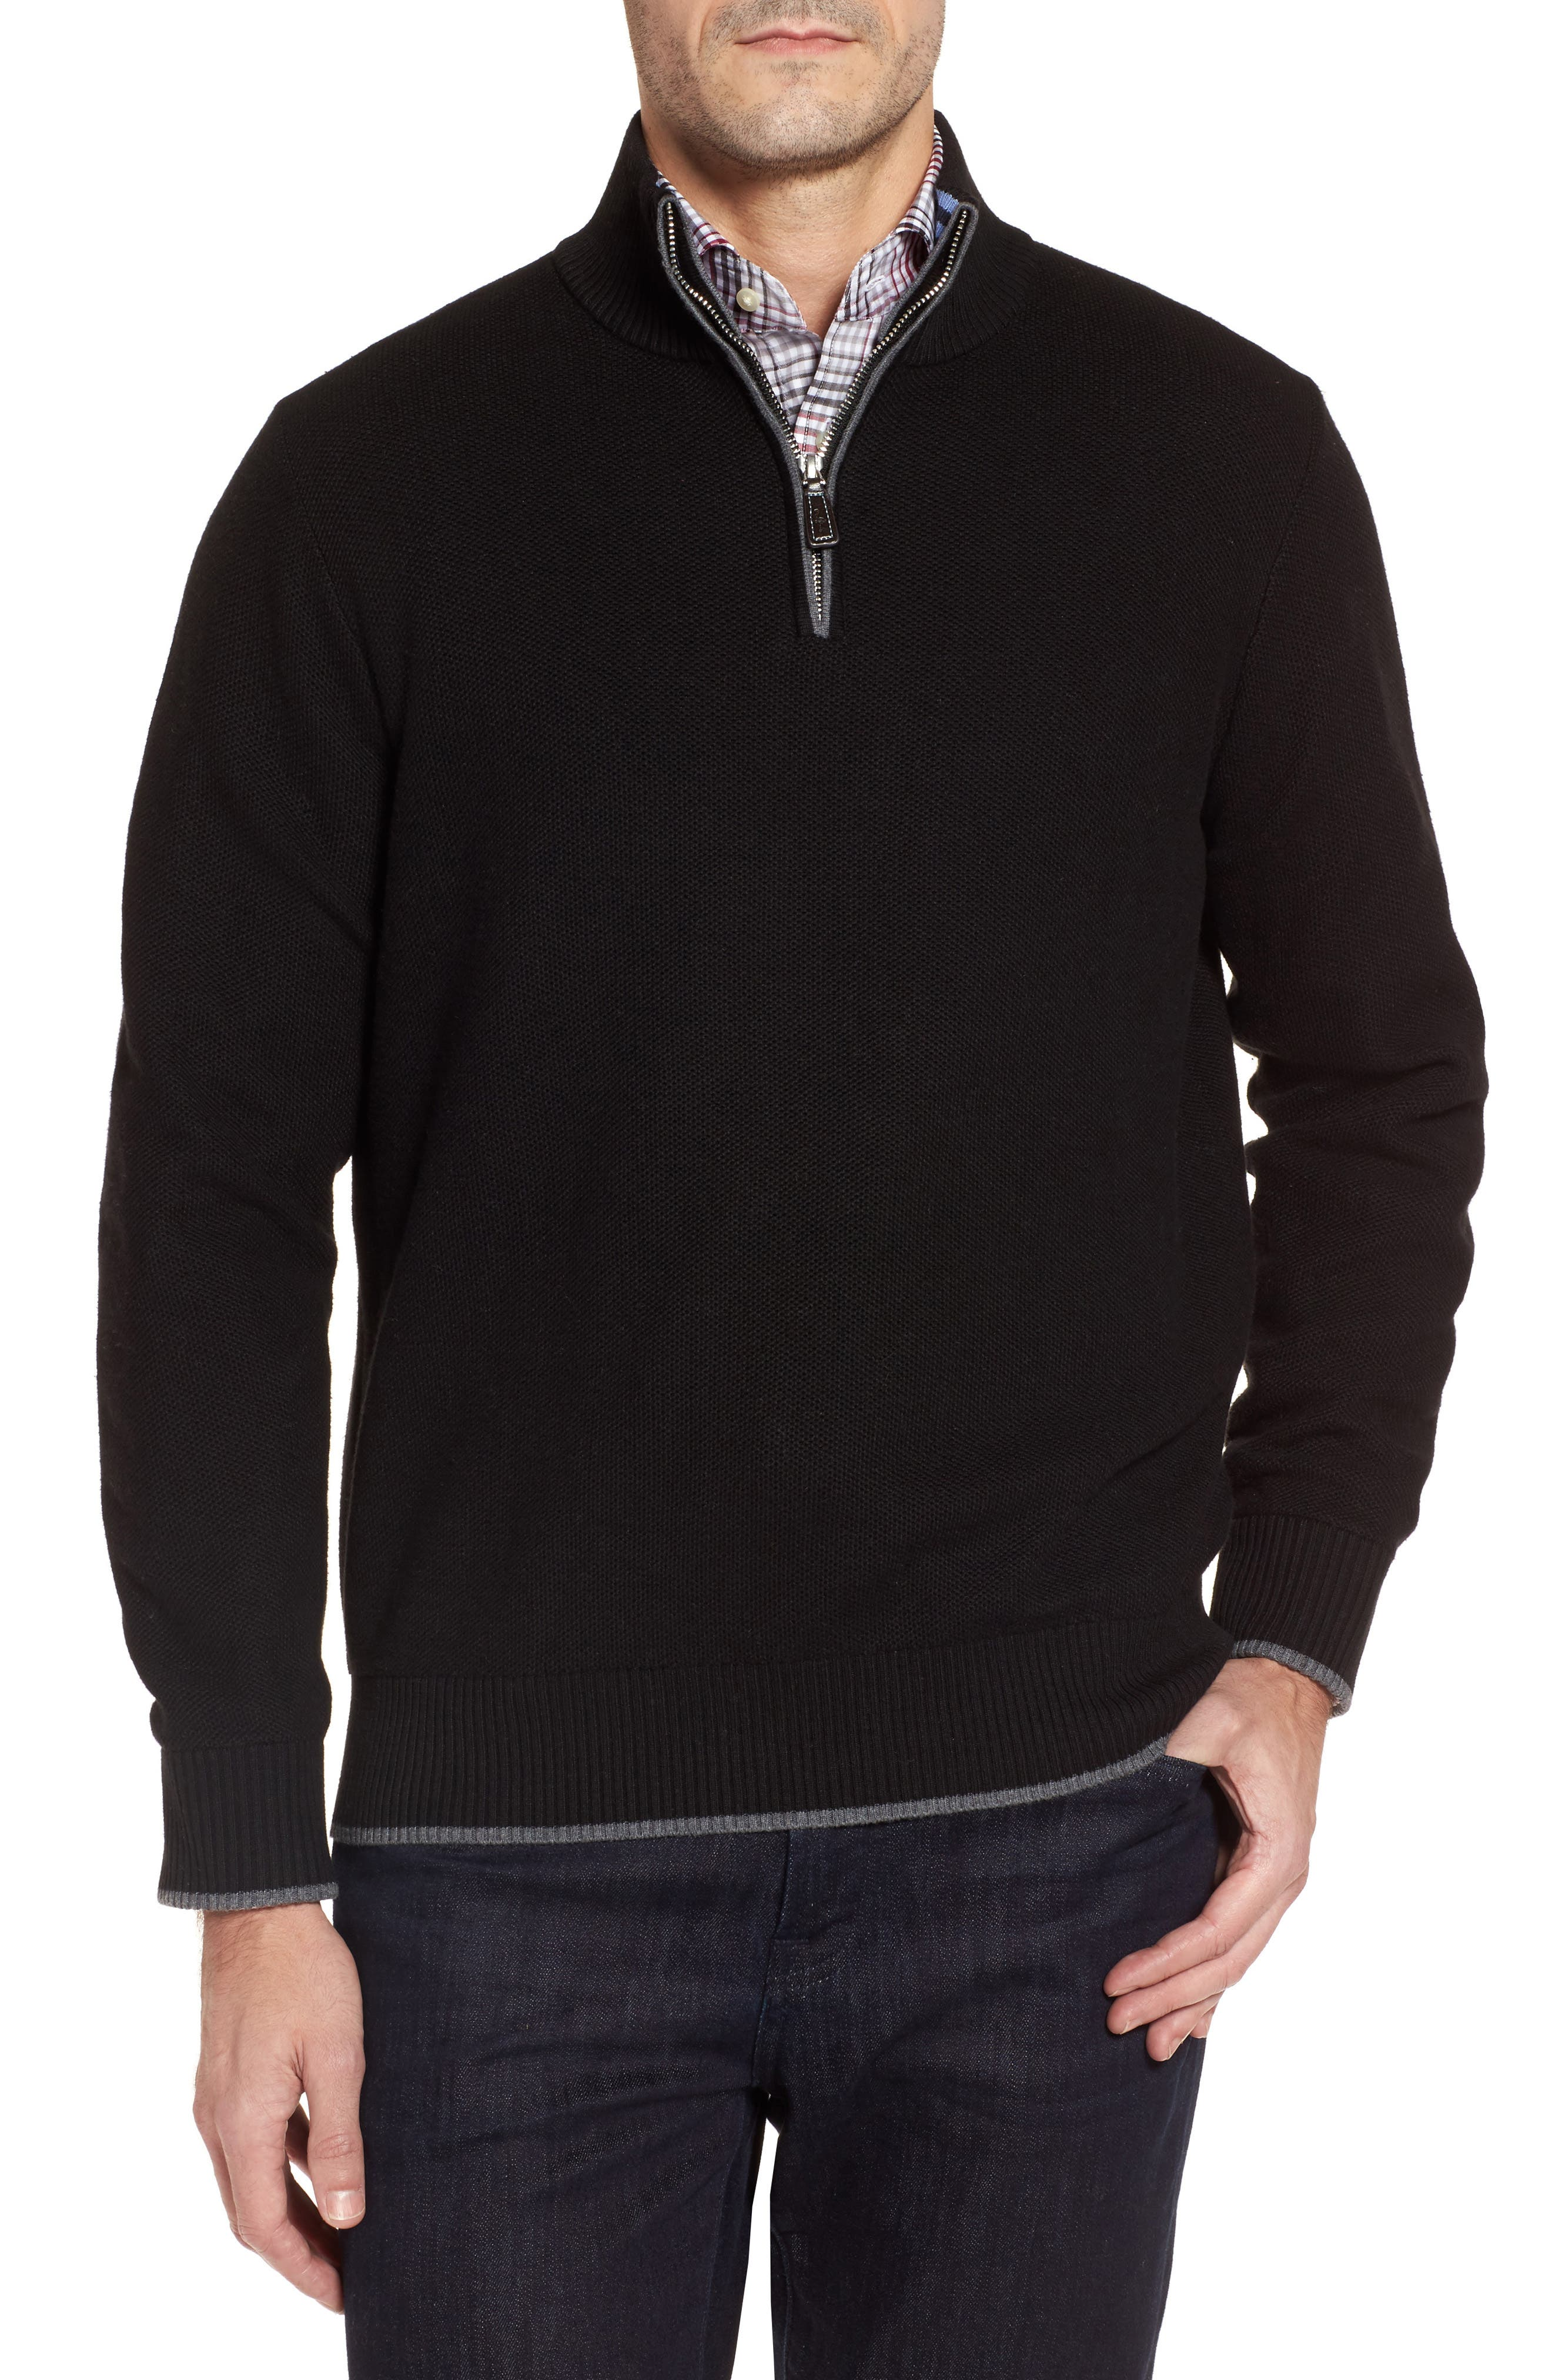 Lafitte Tipped Quarter Zip Sweater,                             Main thumbnail 1, color,                             001